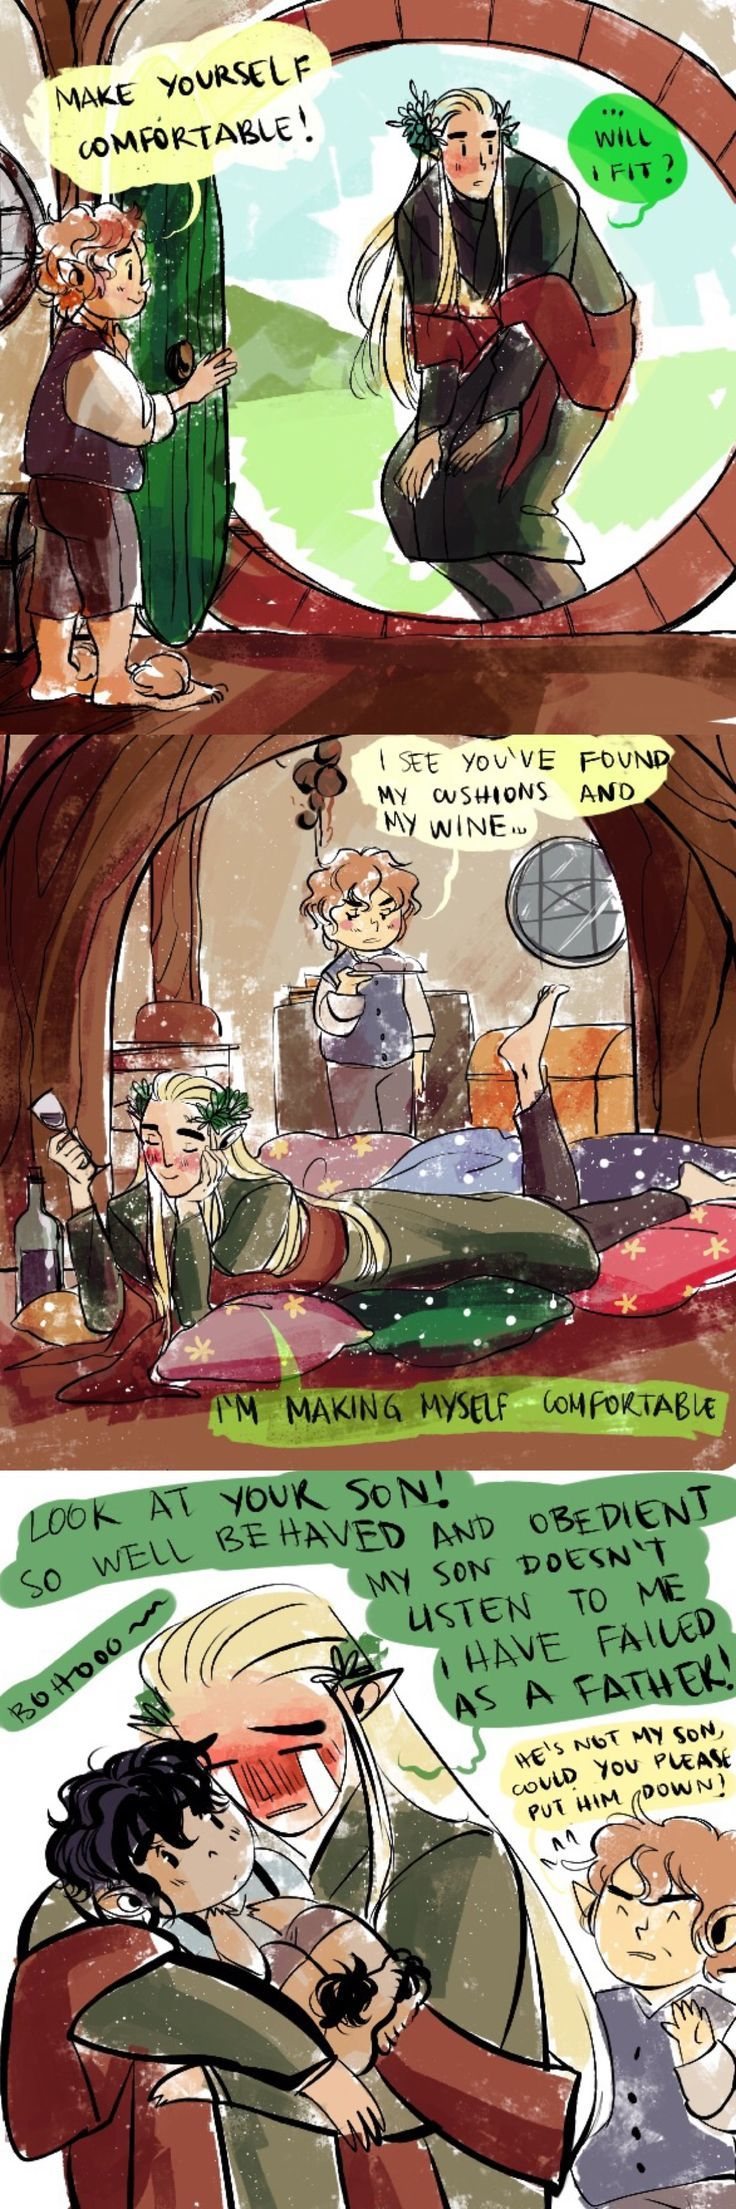 Thranduil visiting Bilbo in the Shire, being a too comfortable guest and an emotional drunk.: